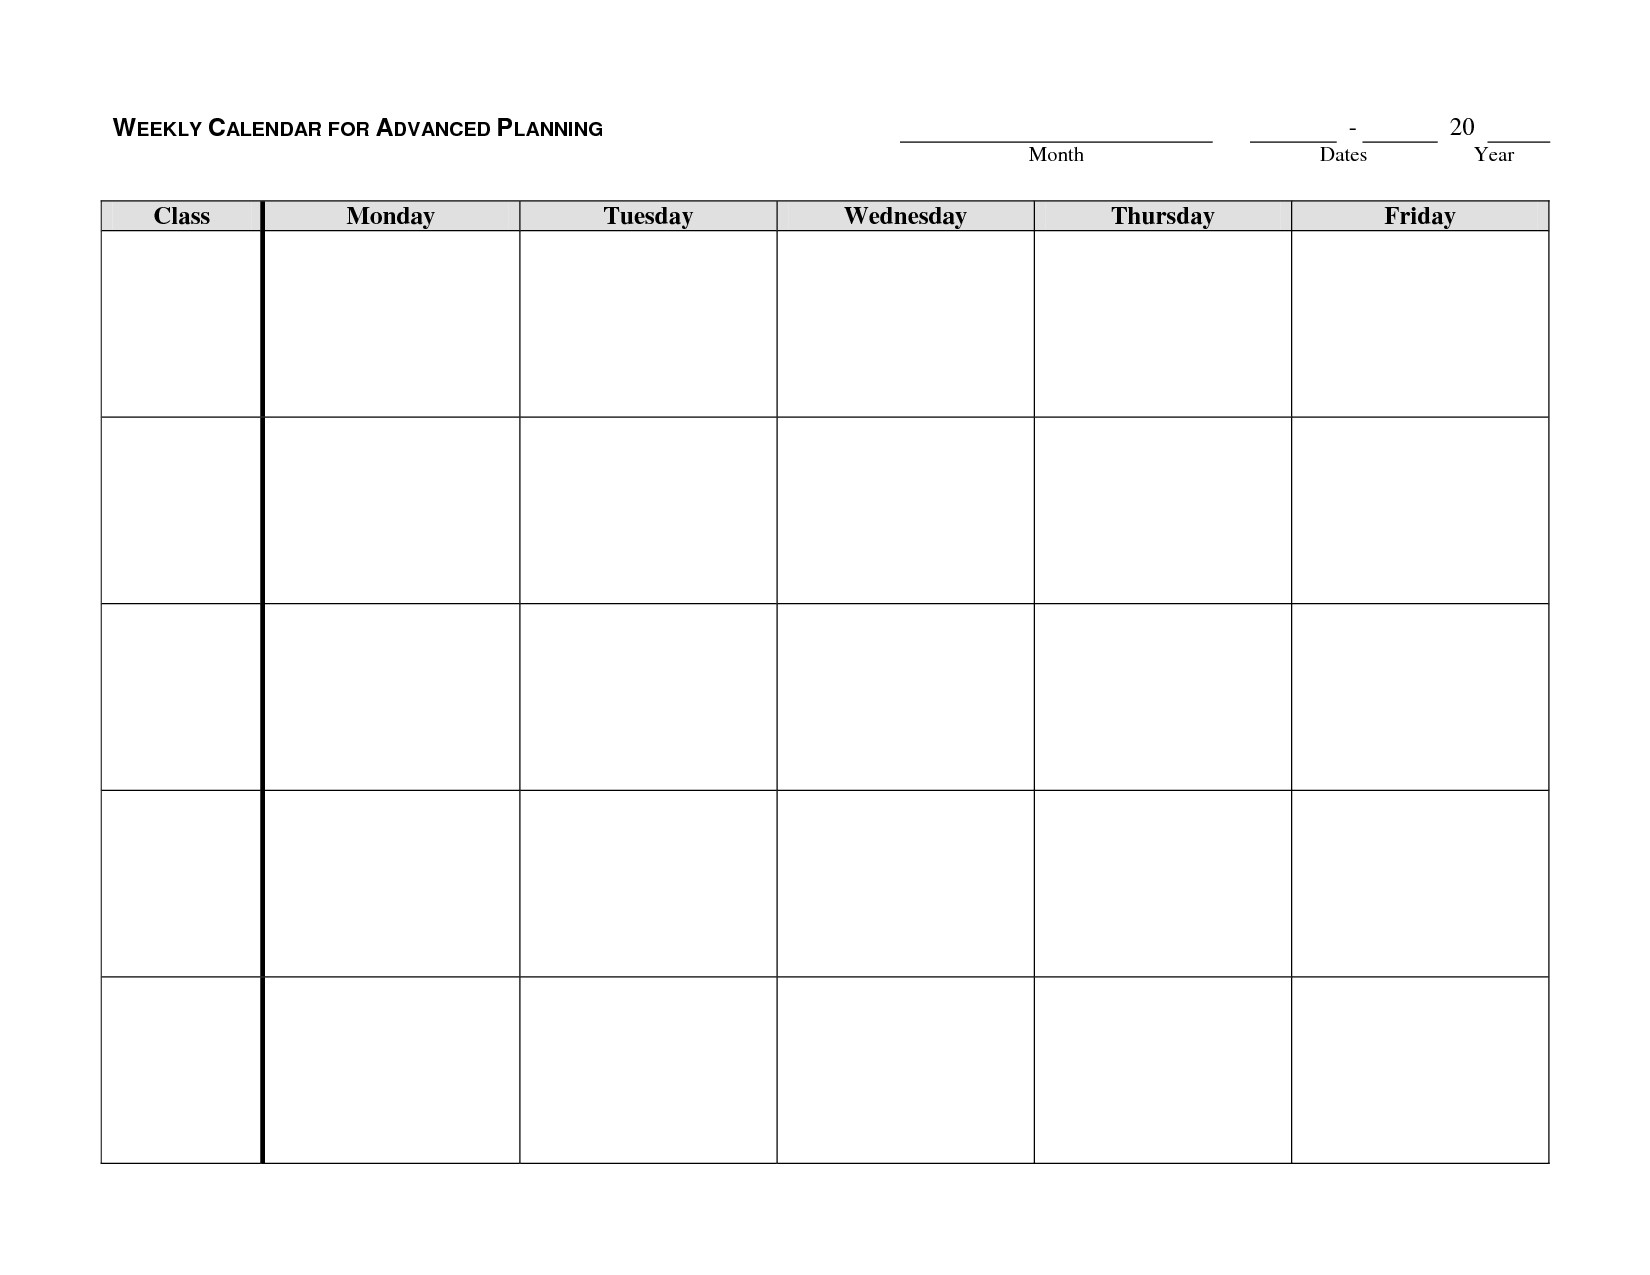 Monday To Friday Schedule Printable  Calendar Inspiration with regard to Monday Through Friday Blank Calendar